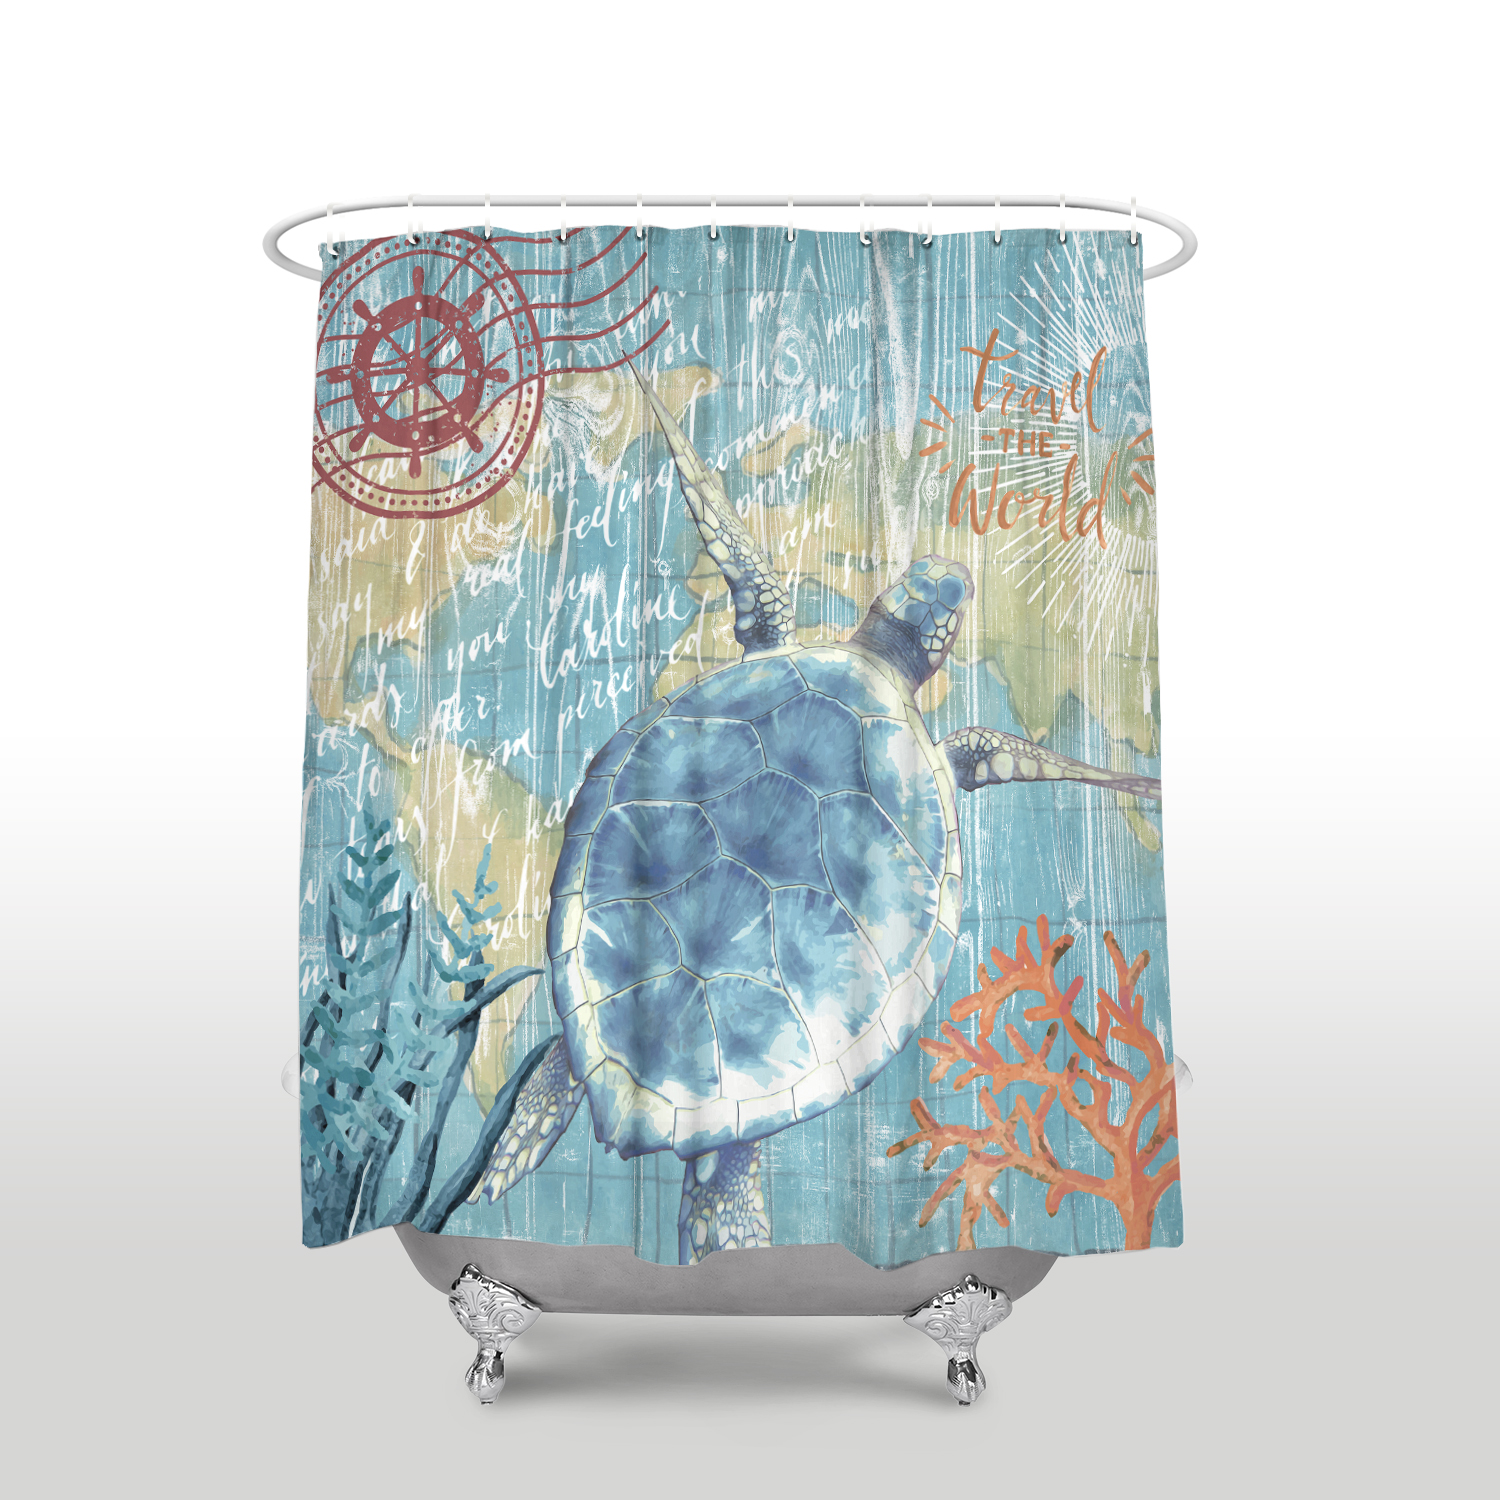 Us 16 97 45 Off New Arrival Waterproof Sea Life Sea Turtle Shower Curtain With Hooks Polyester Fabric Bathroom Curtains For Home Decor In Shower